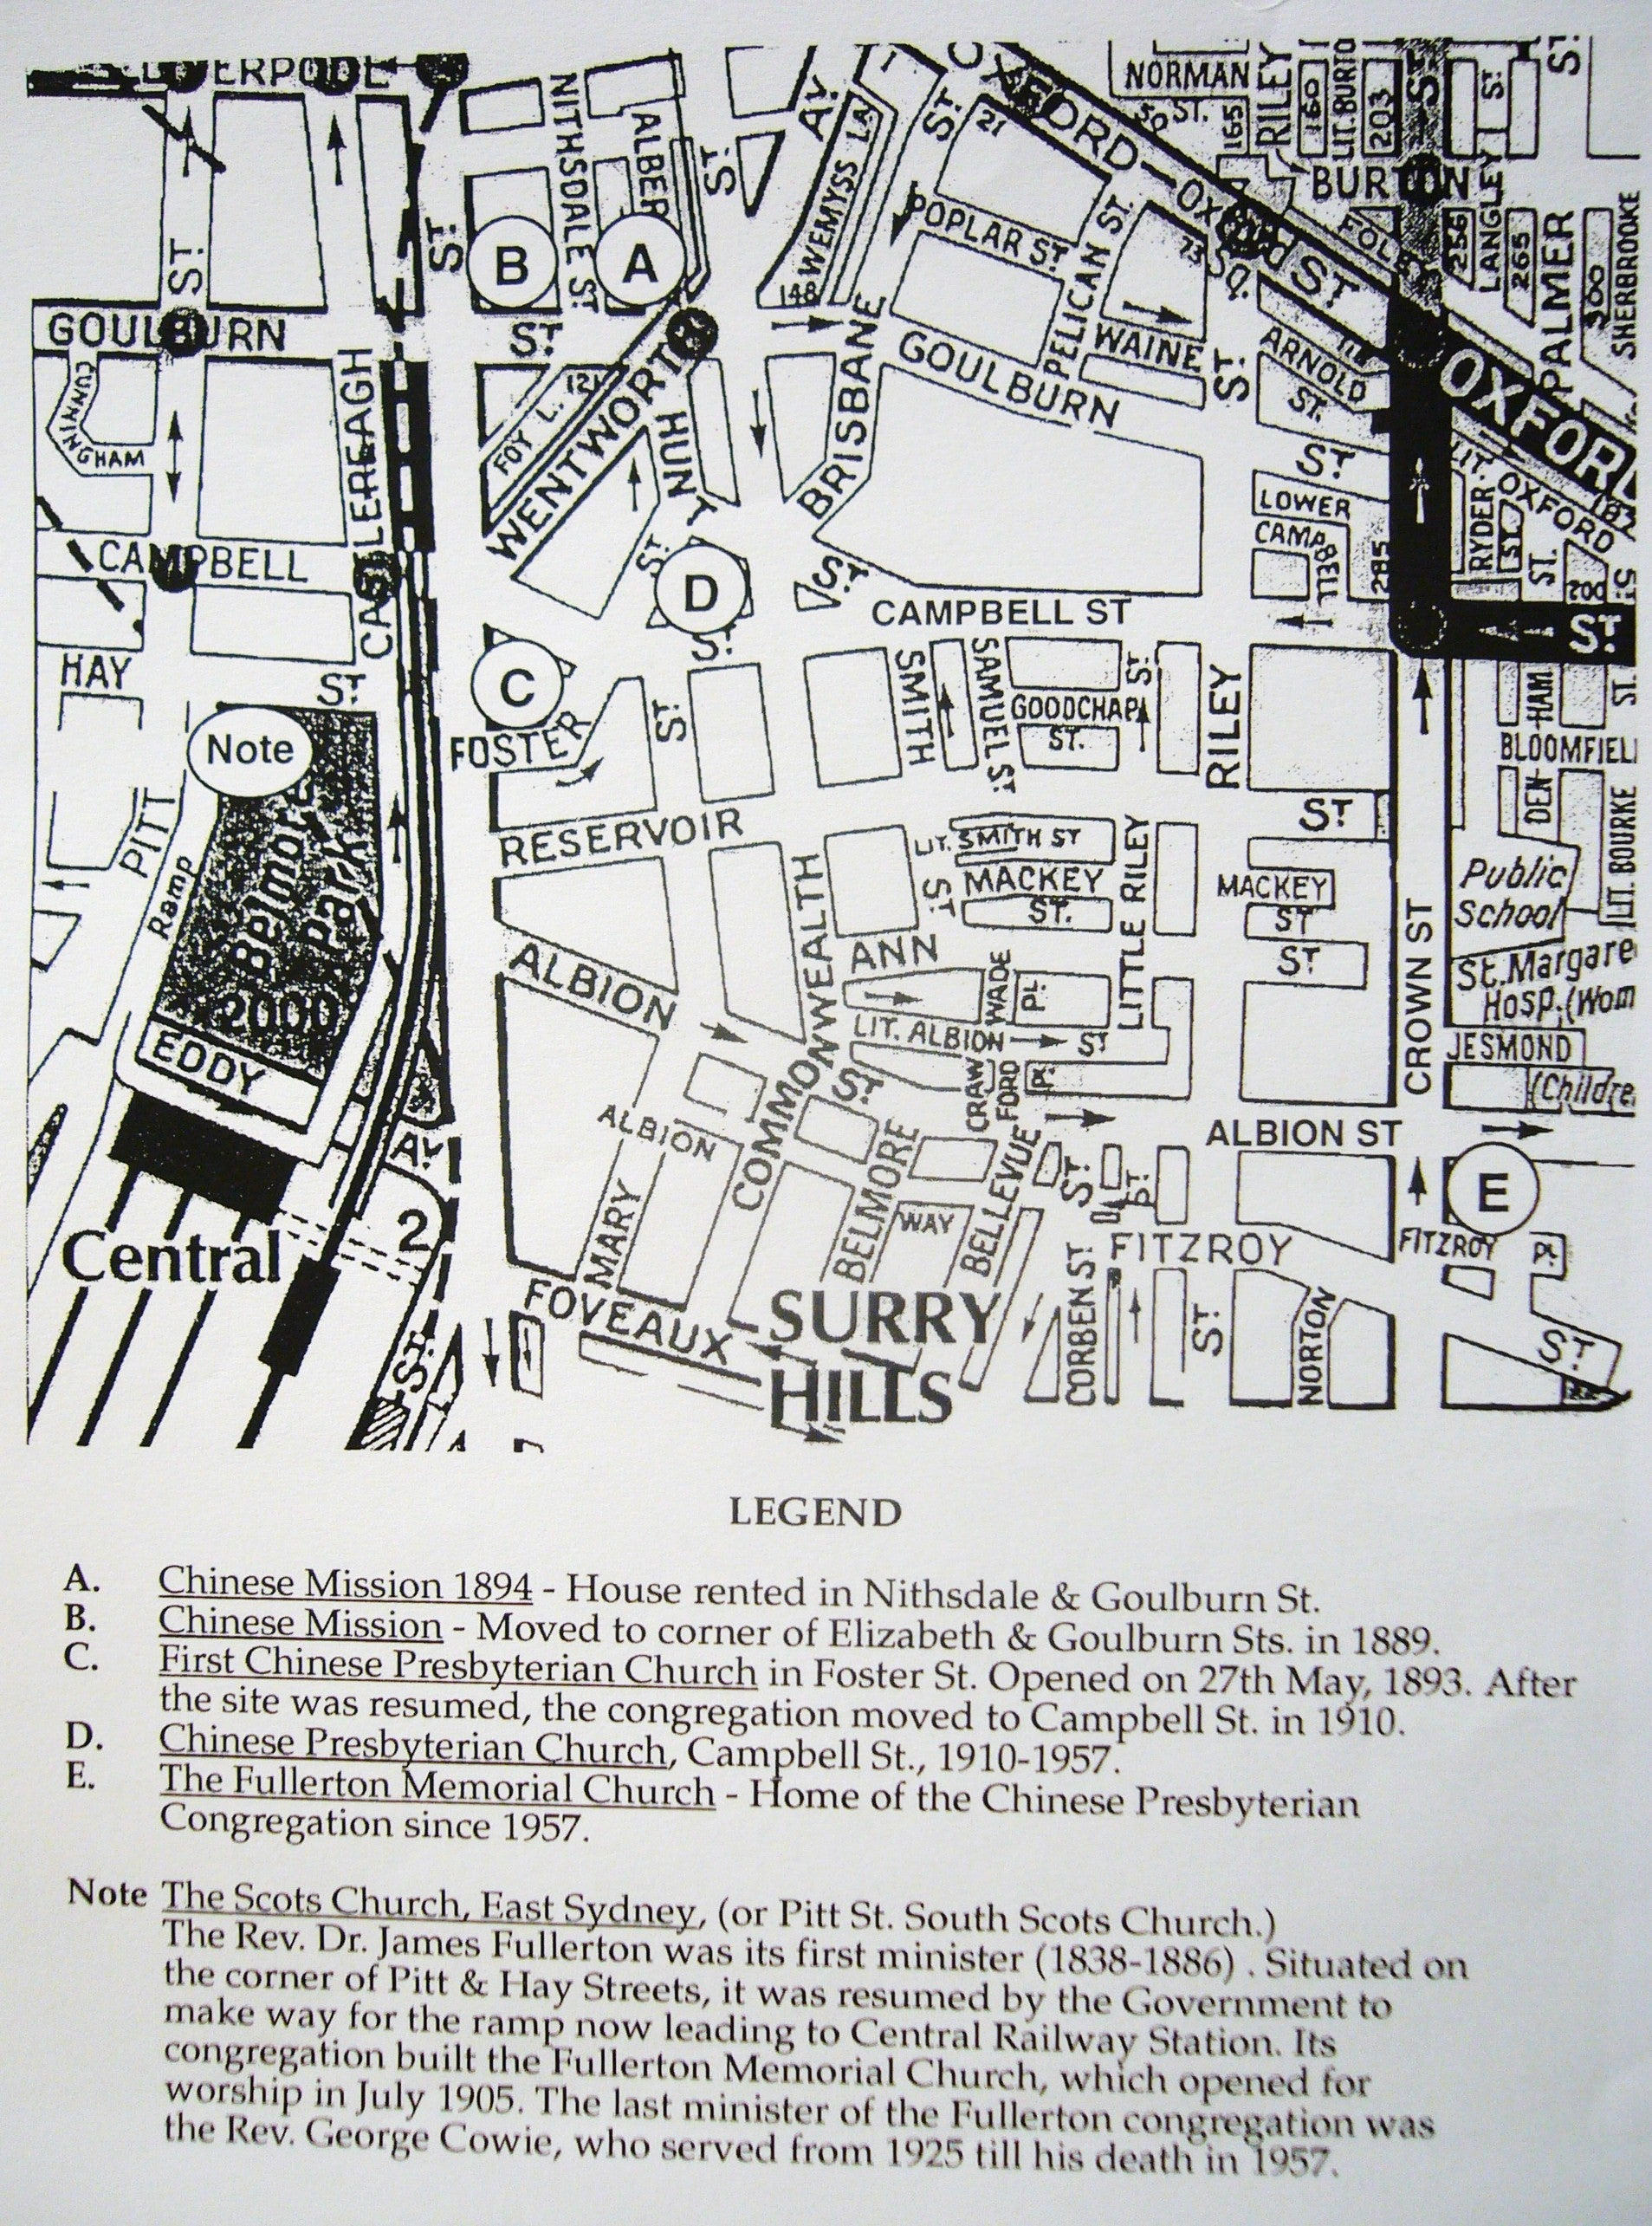 Locations of the Chinese Presbyterian Church (from 1884 to today) (courtesy of Howard Wilson)